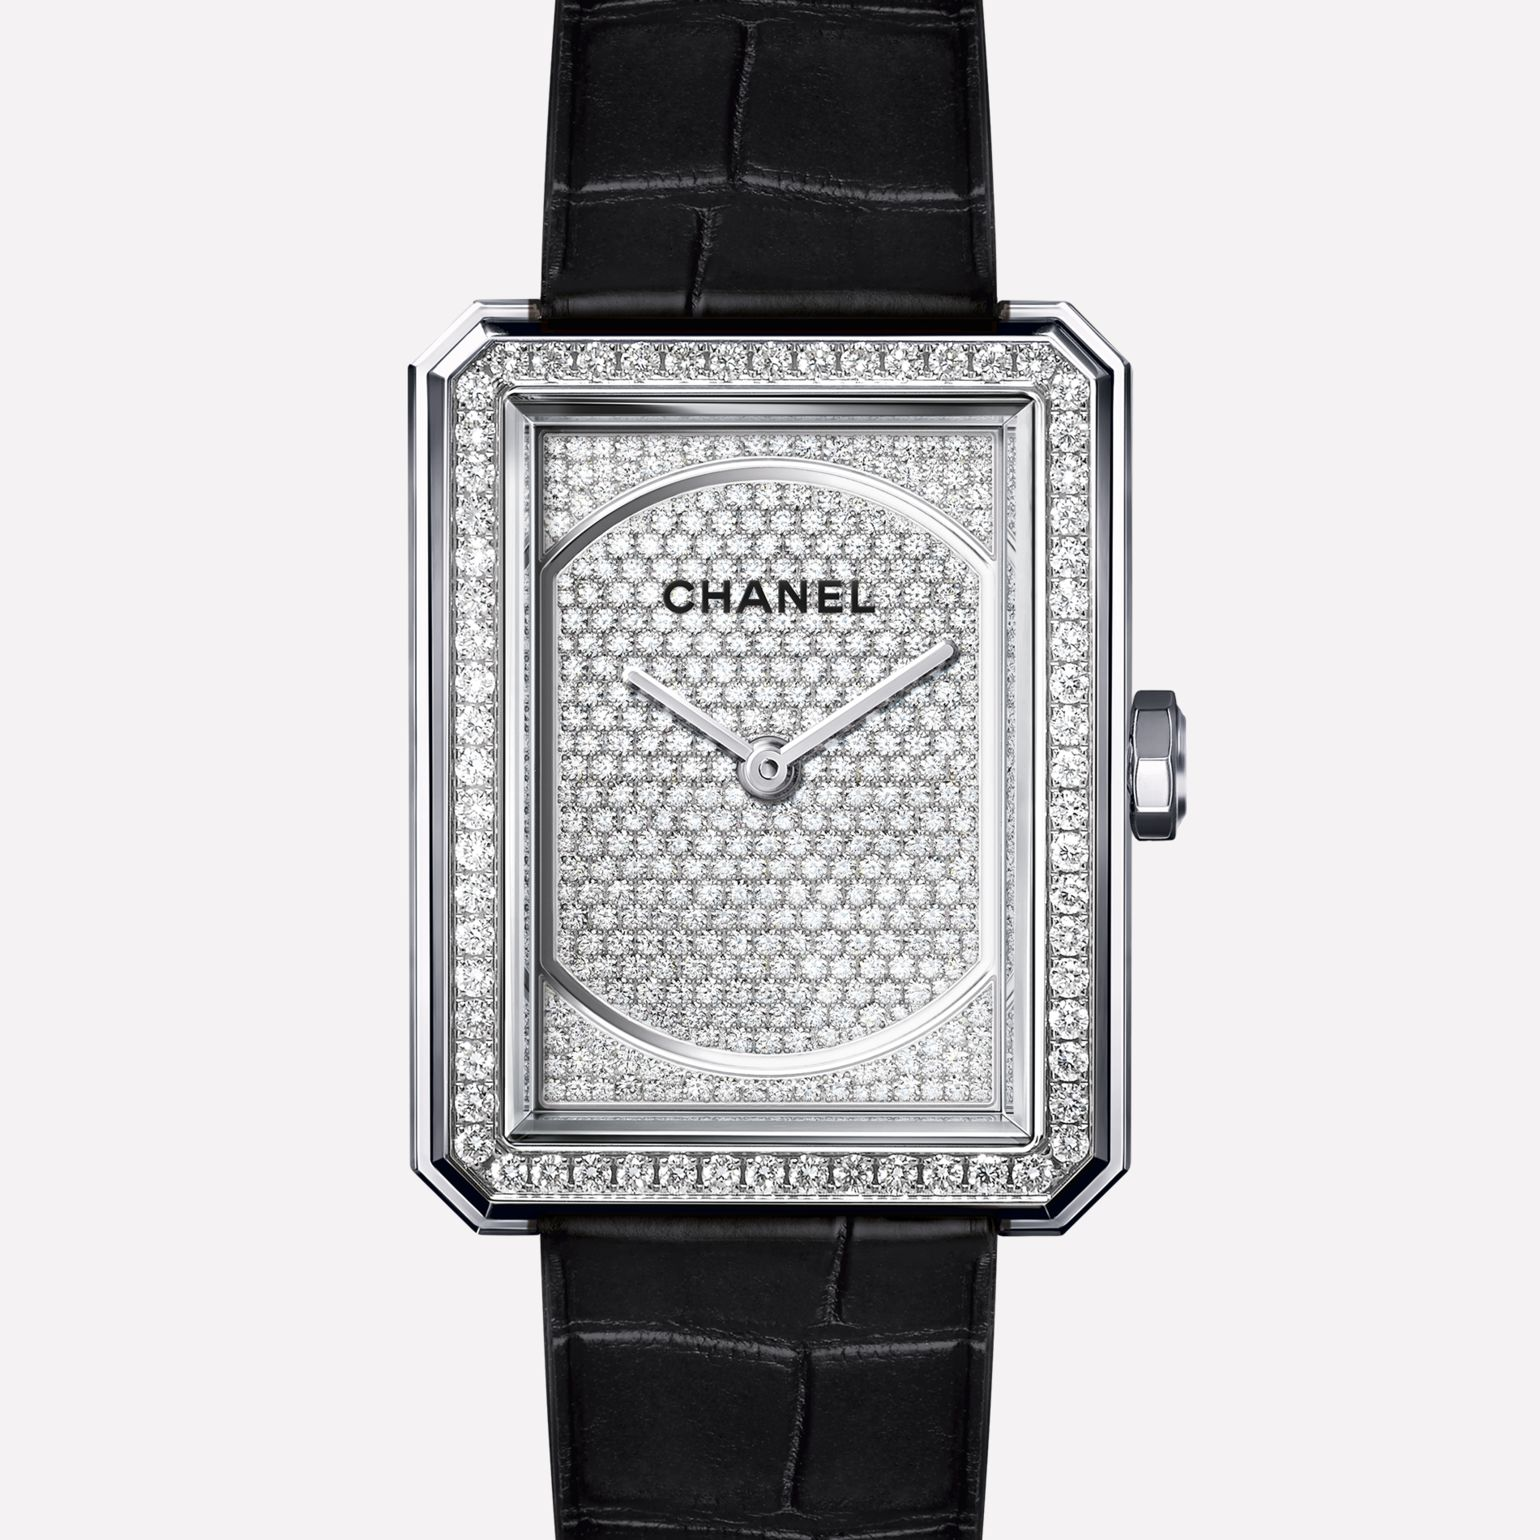 PREMIÈRE∙BOY DE CHANEL Medium version, white gold and dial set with diamonds, alligator strap